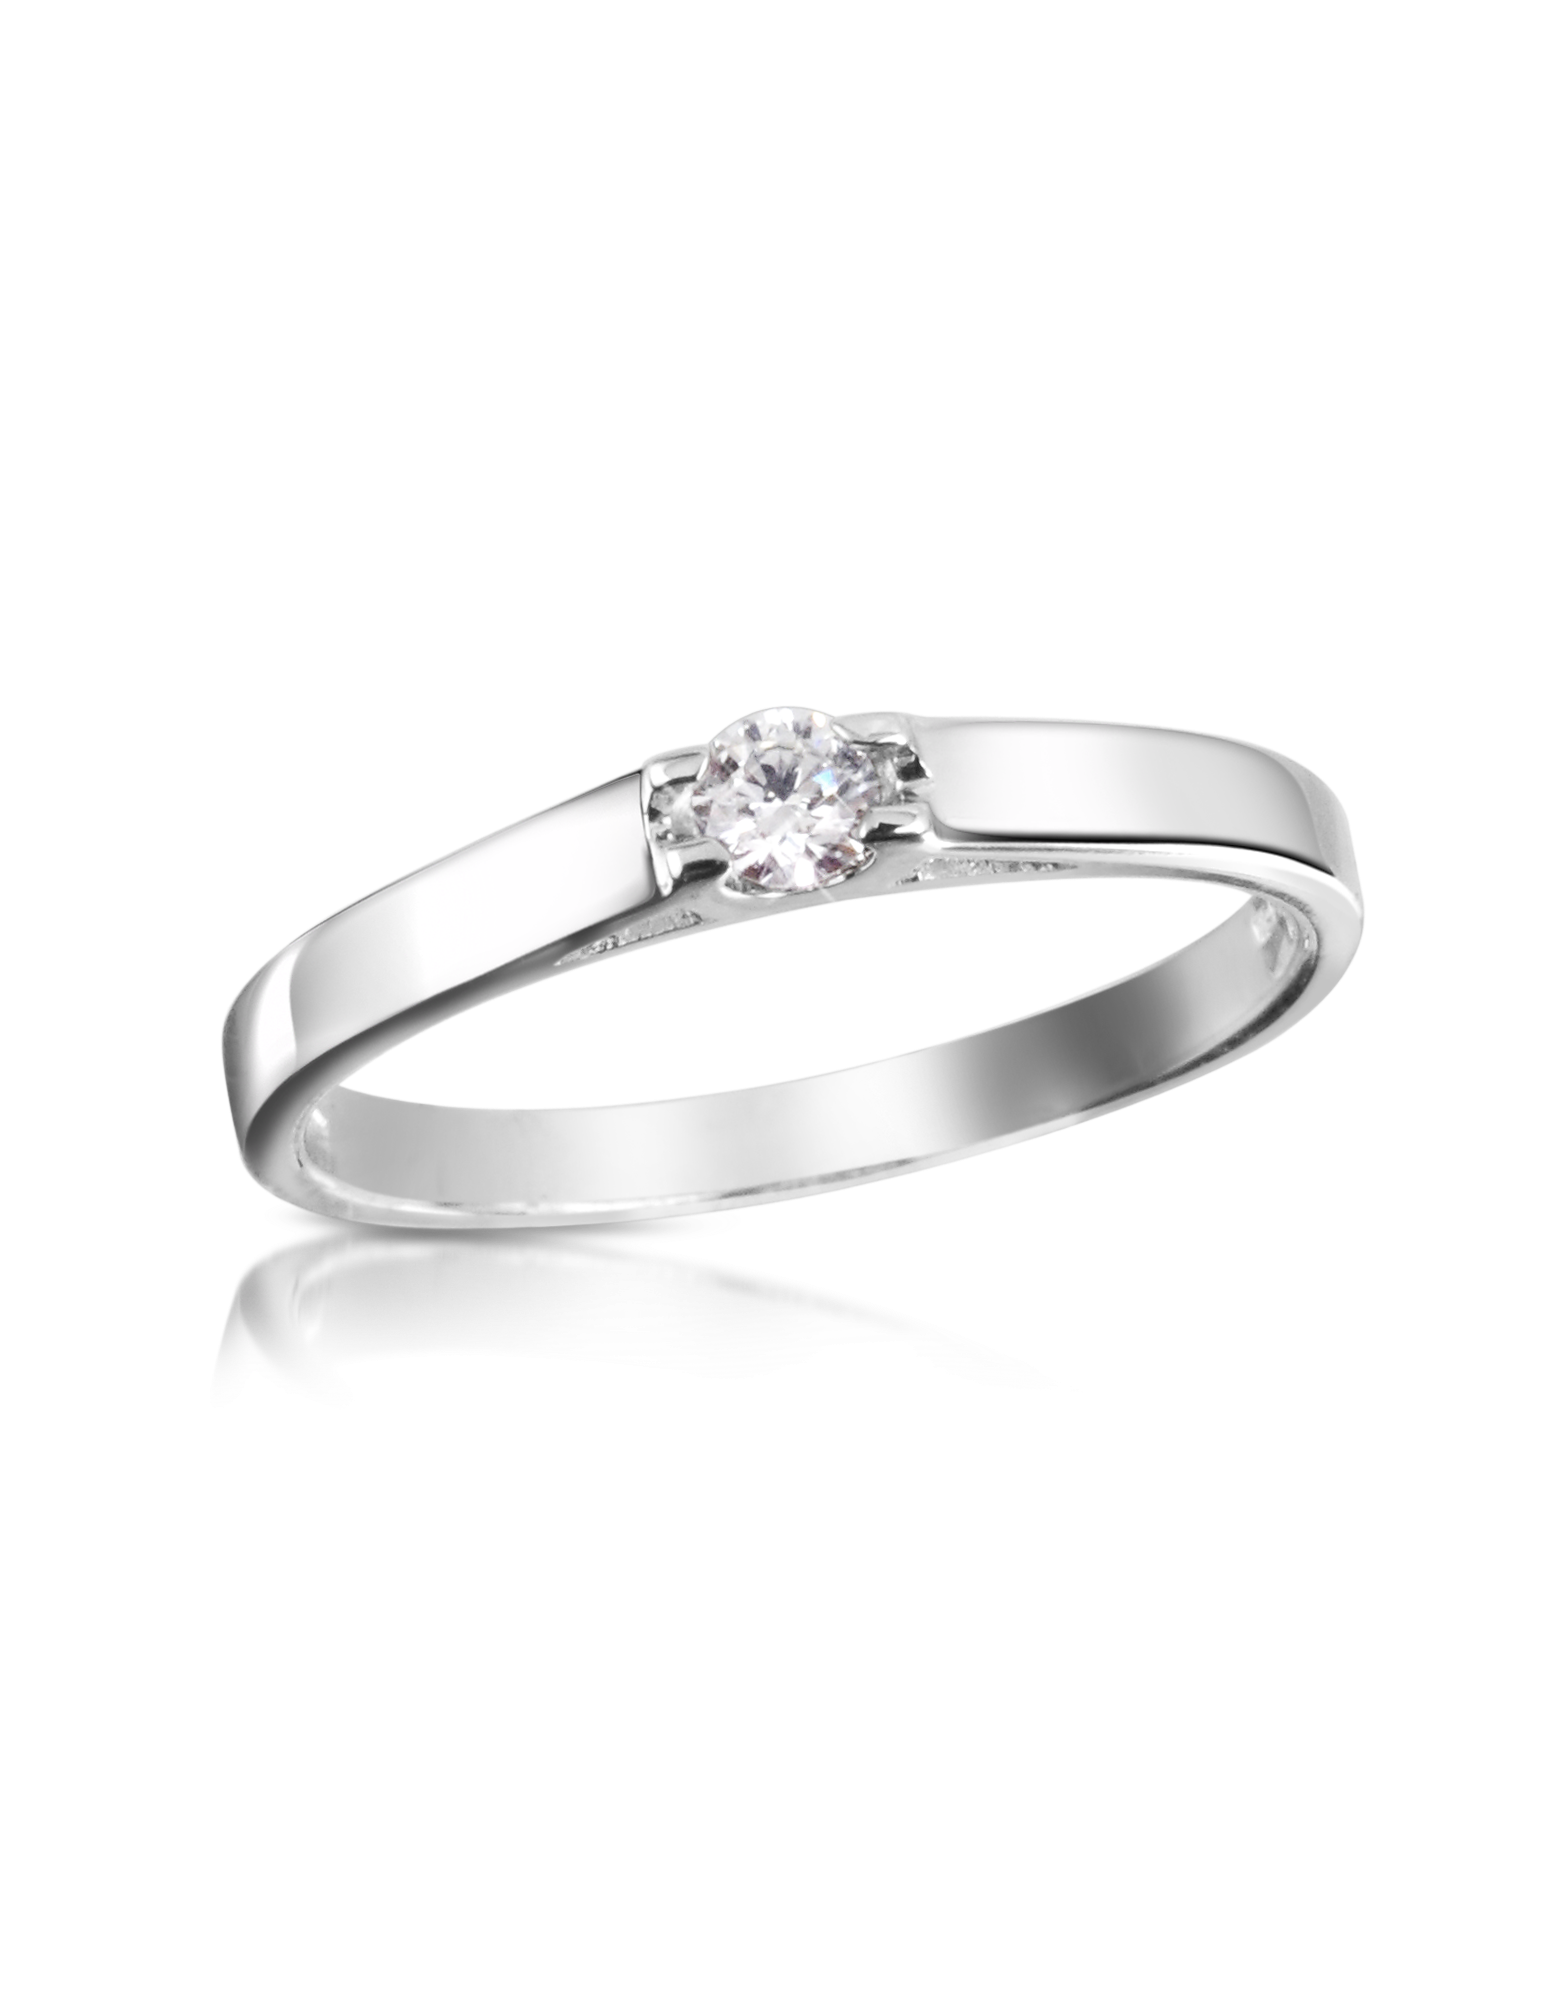 Image of 0.10 ctw Diamond Solitaire Ring